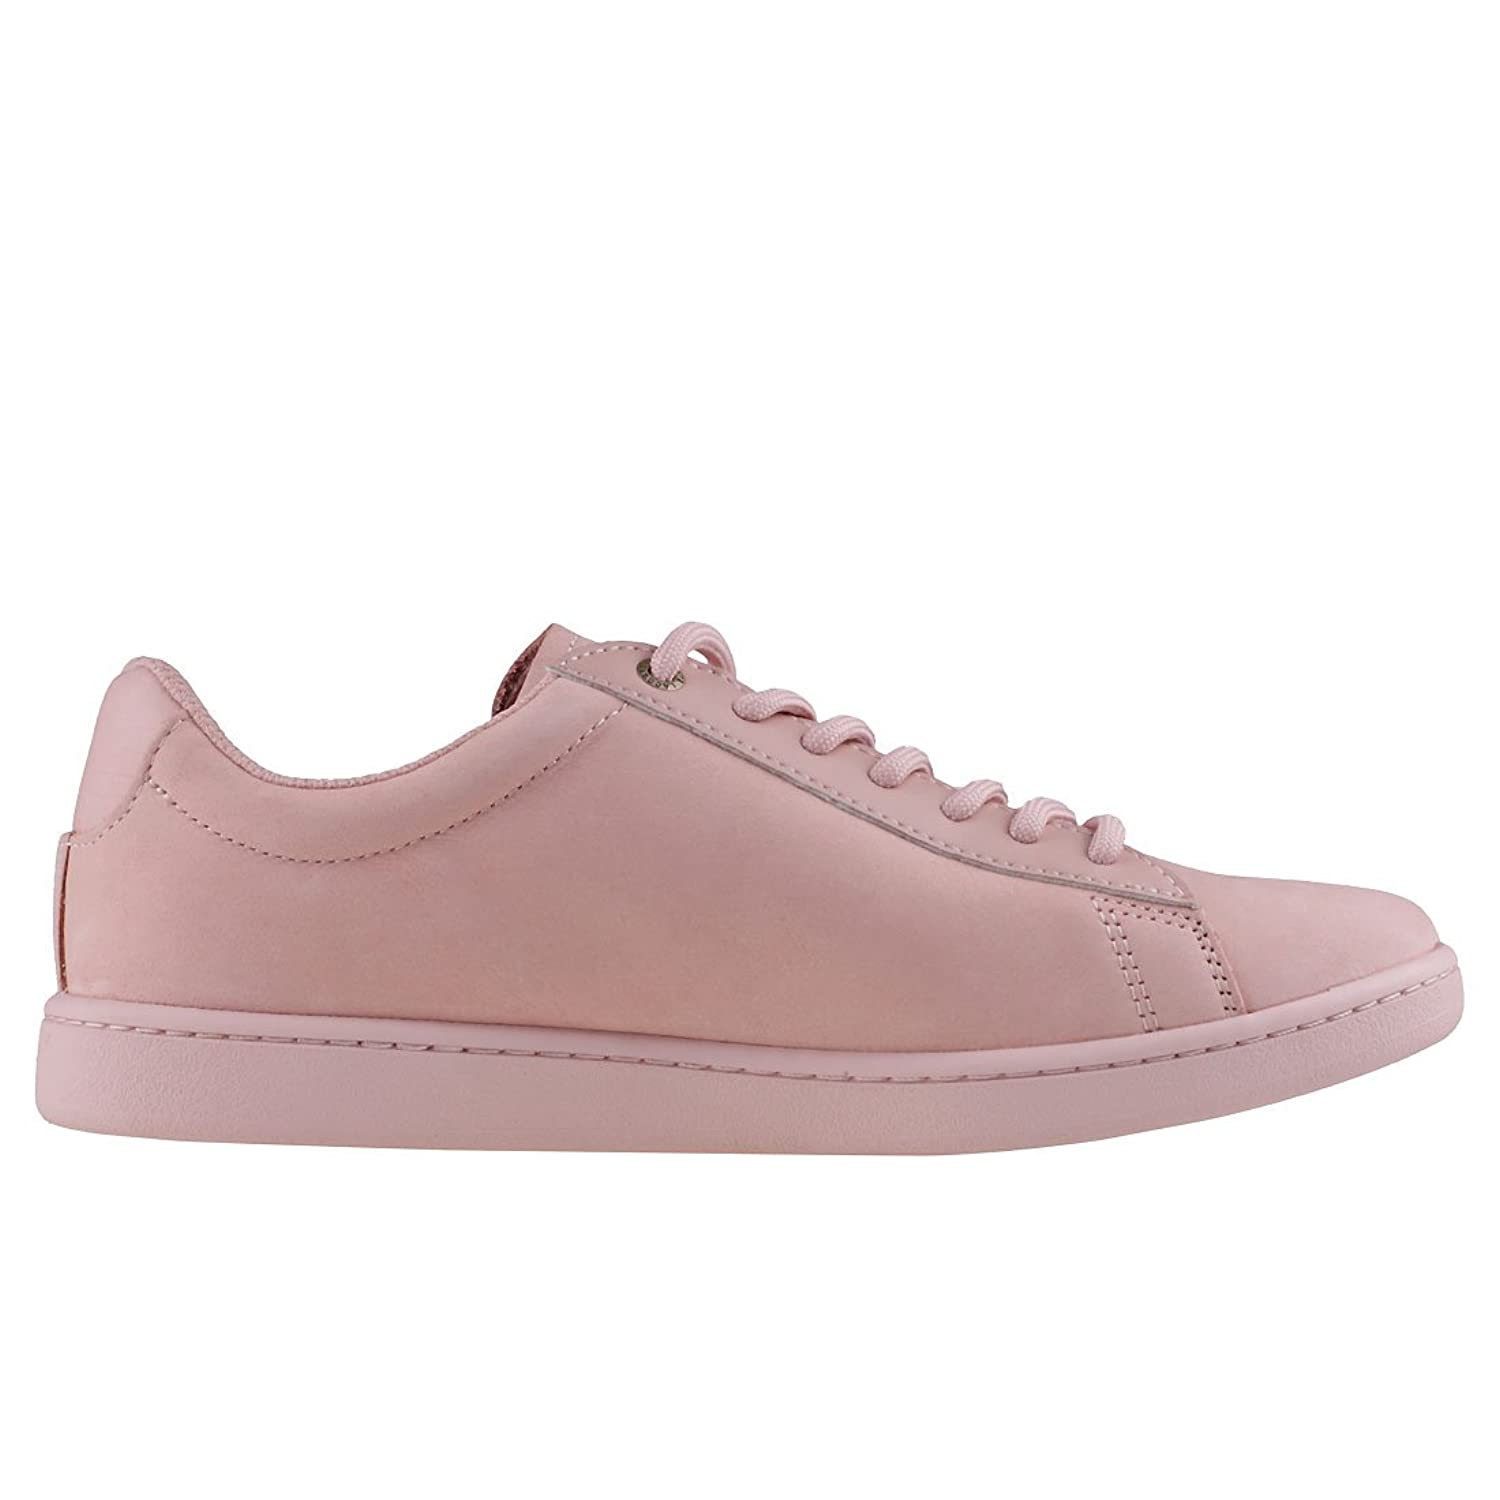 6838fbf73a Lacoste Carnaby Evo Trainers Pink: Amazon.co.uk: Shoes & Bags